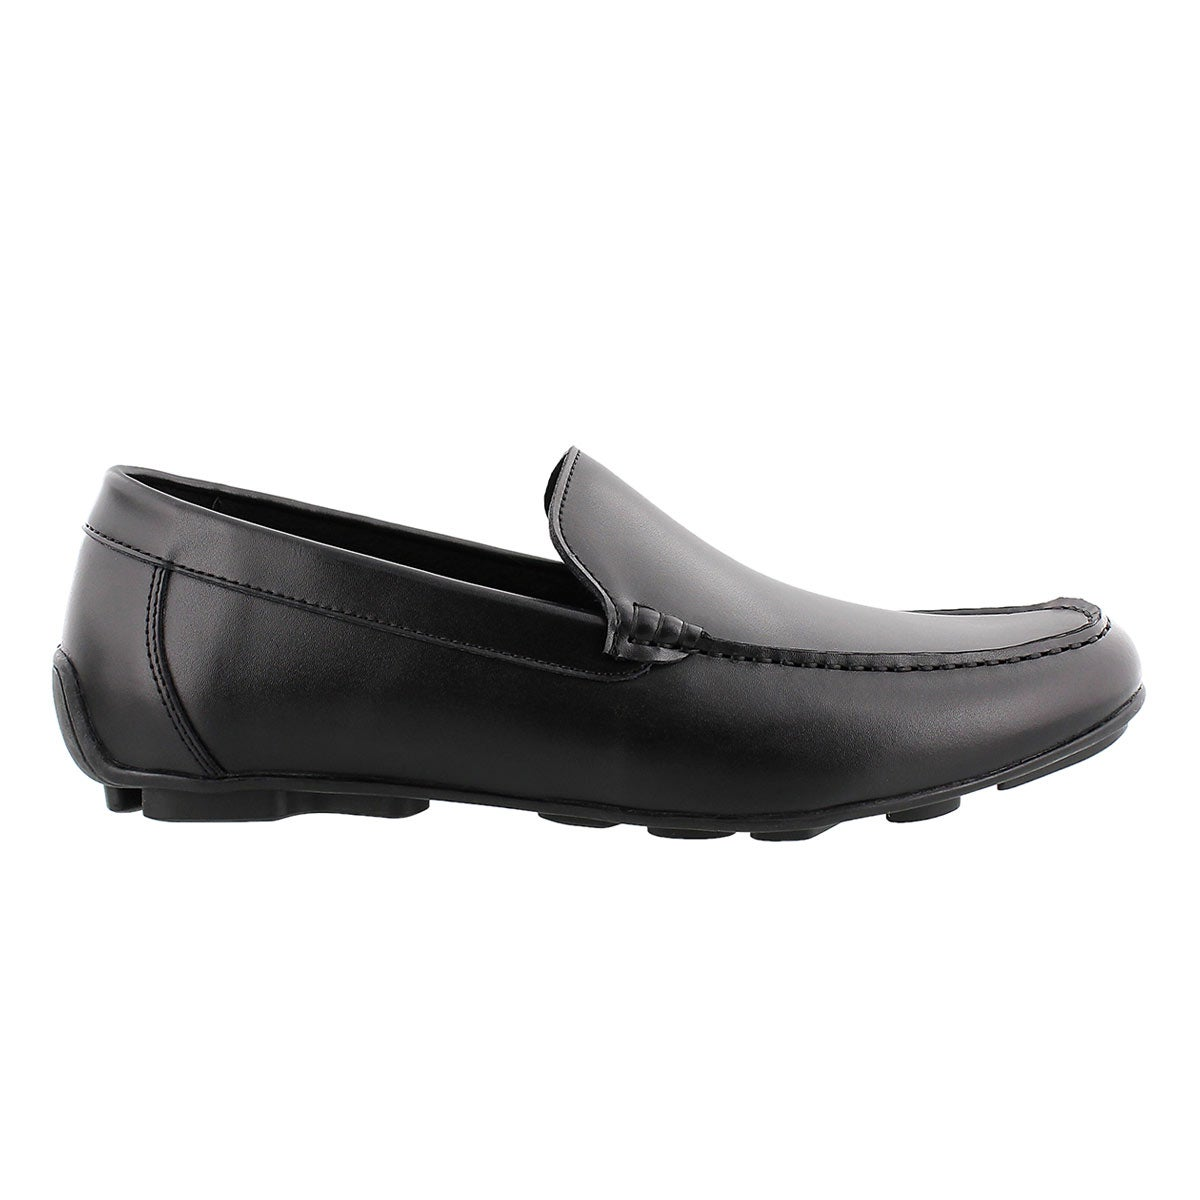 Mns Josh black slip on dress loafer